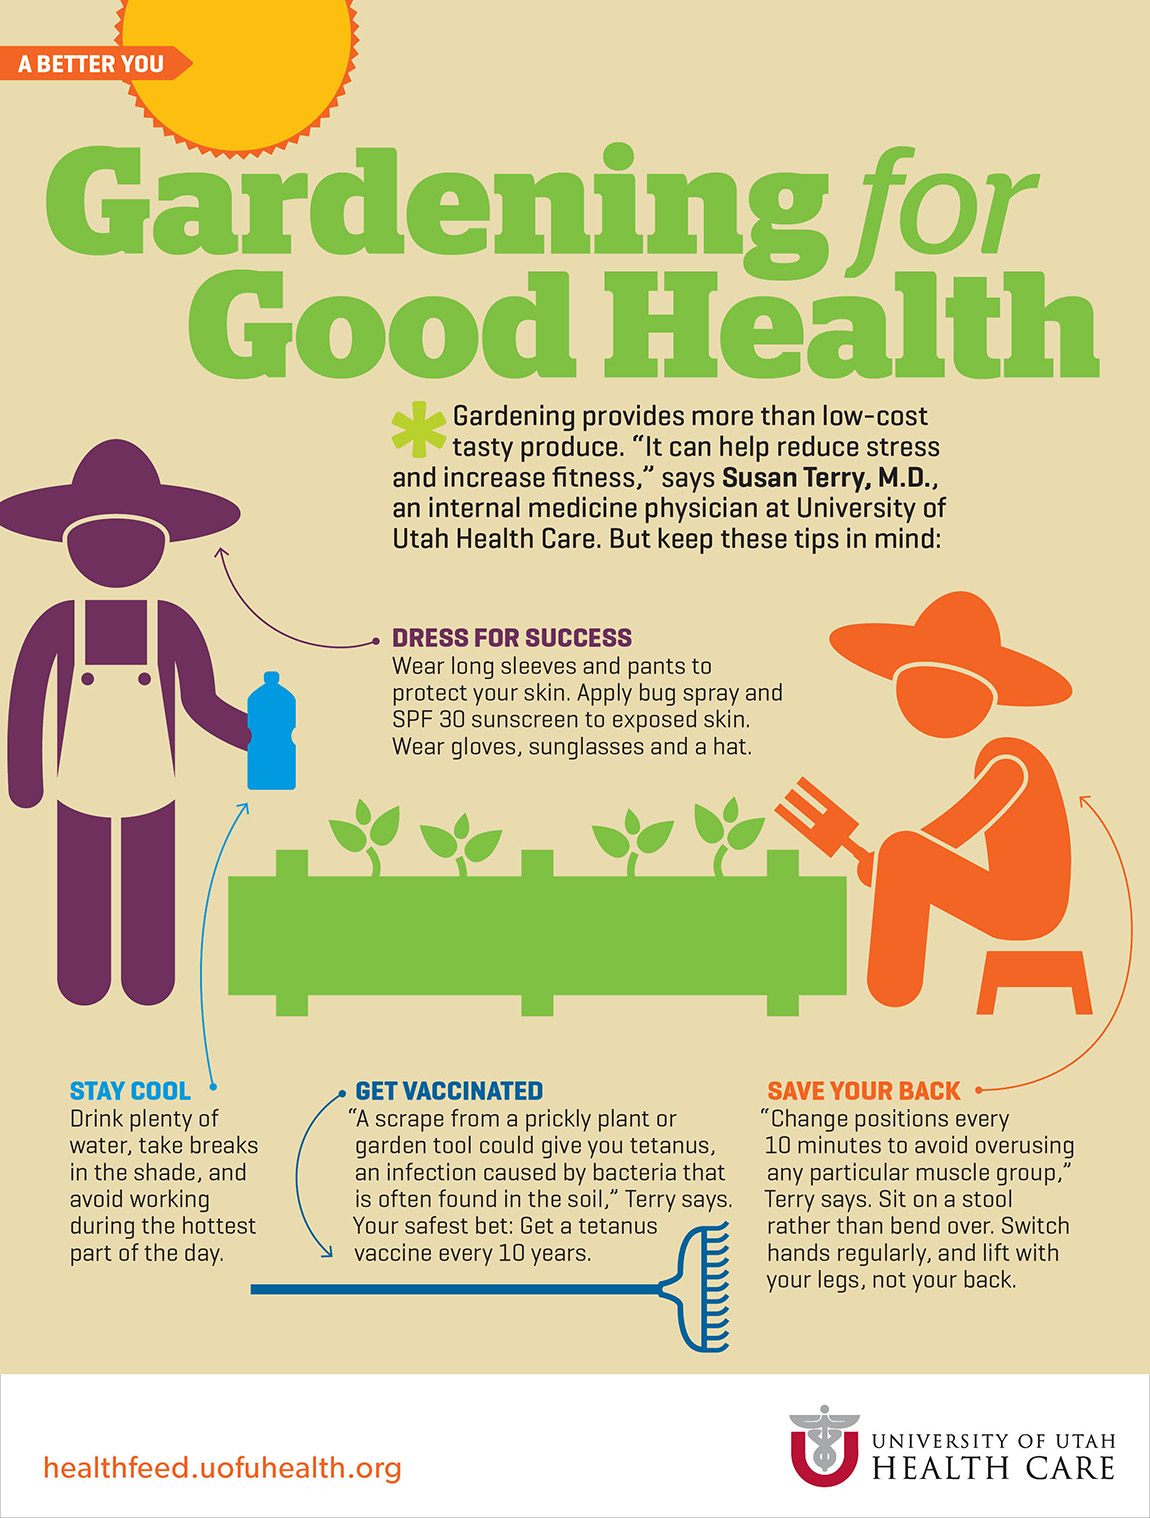 Gardening is good exercise